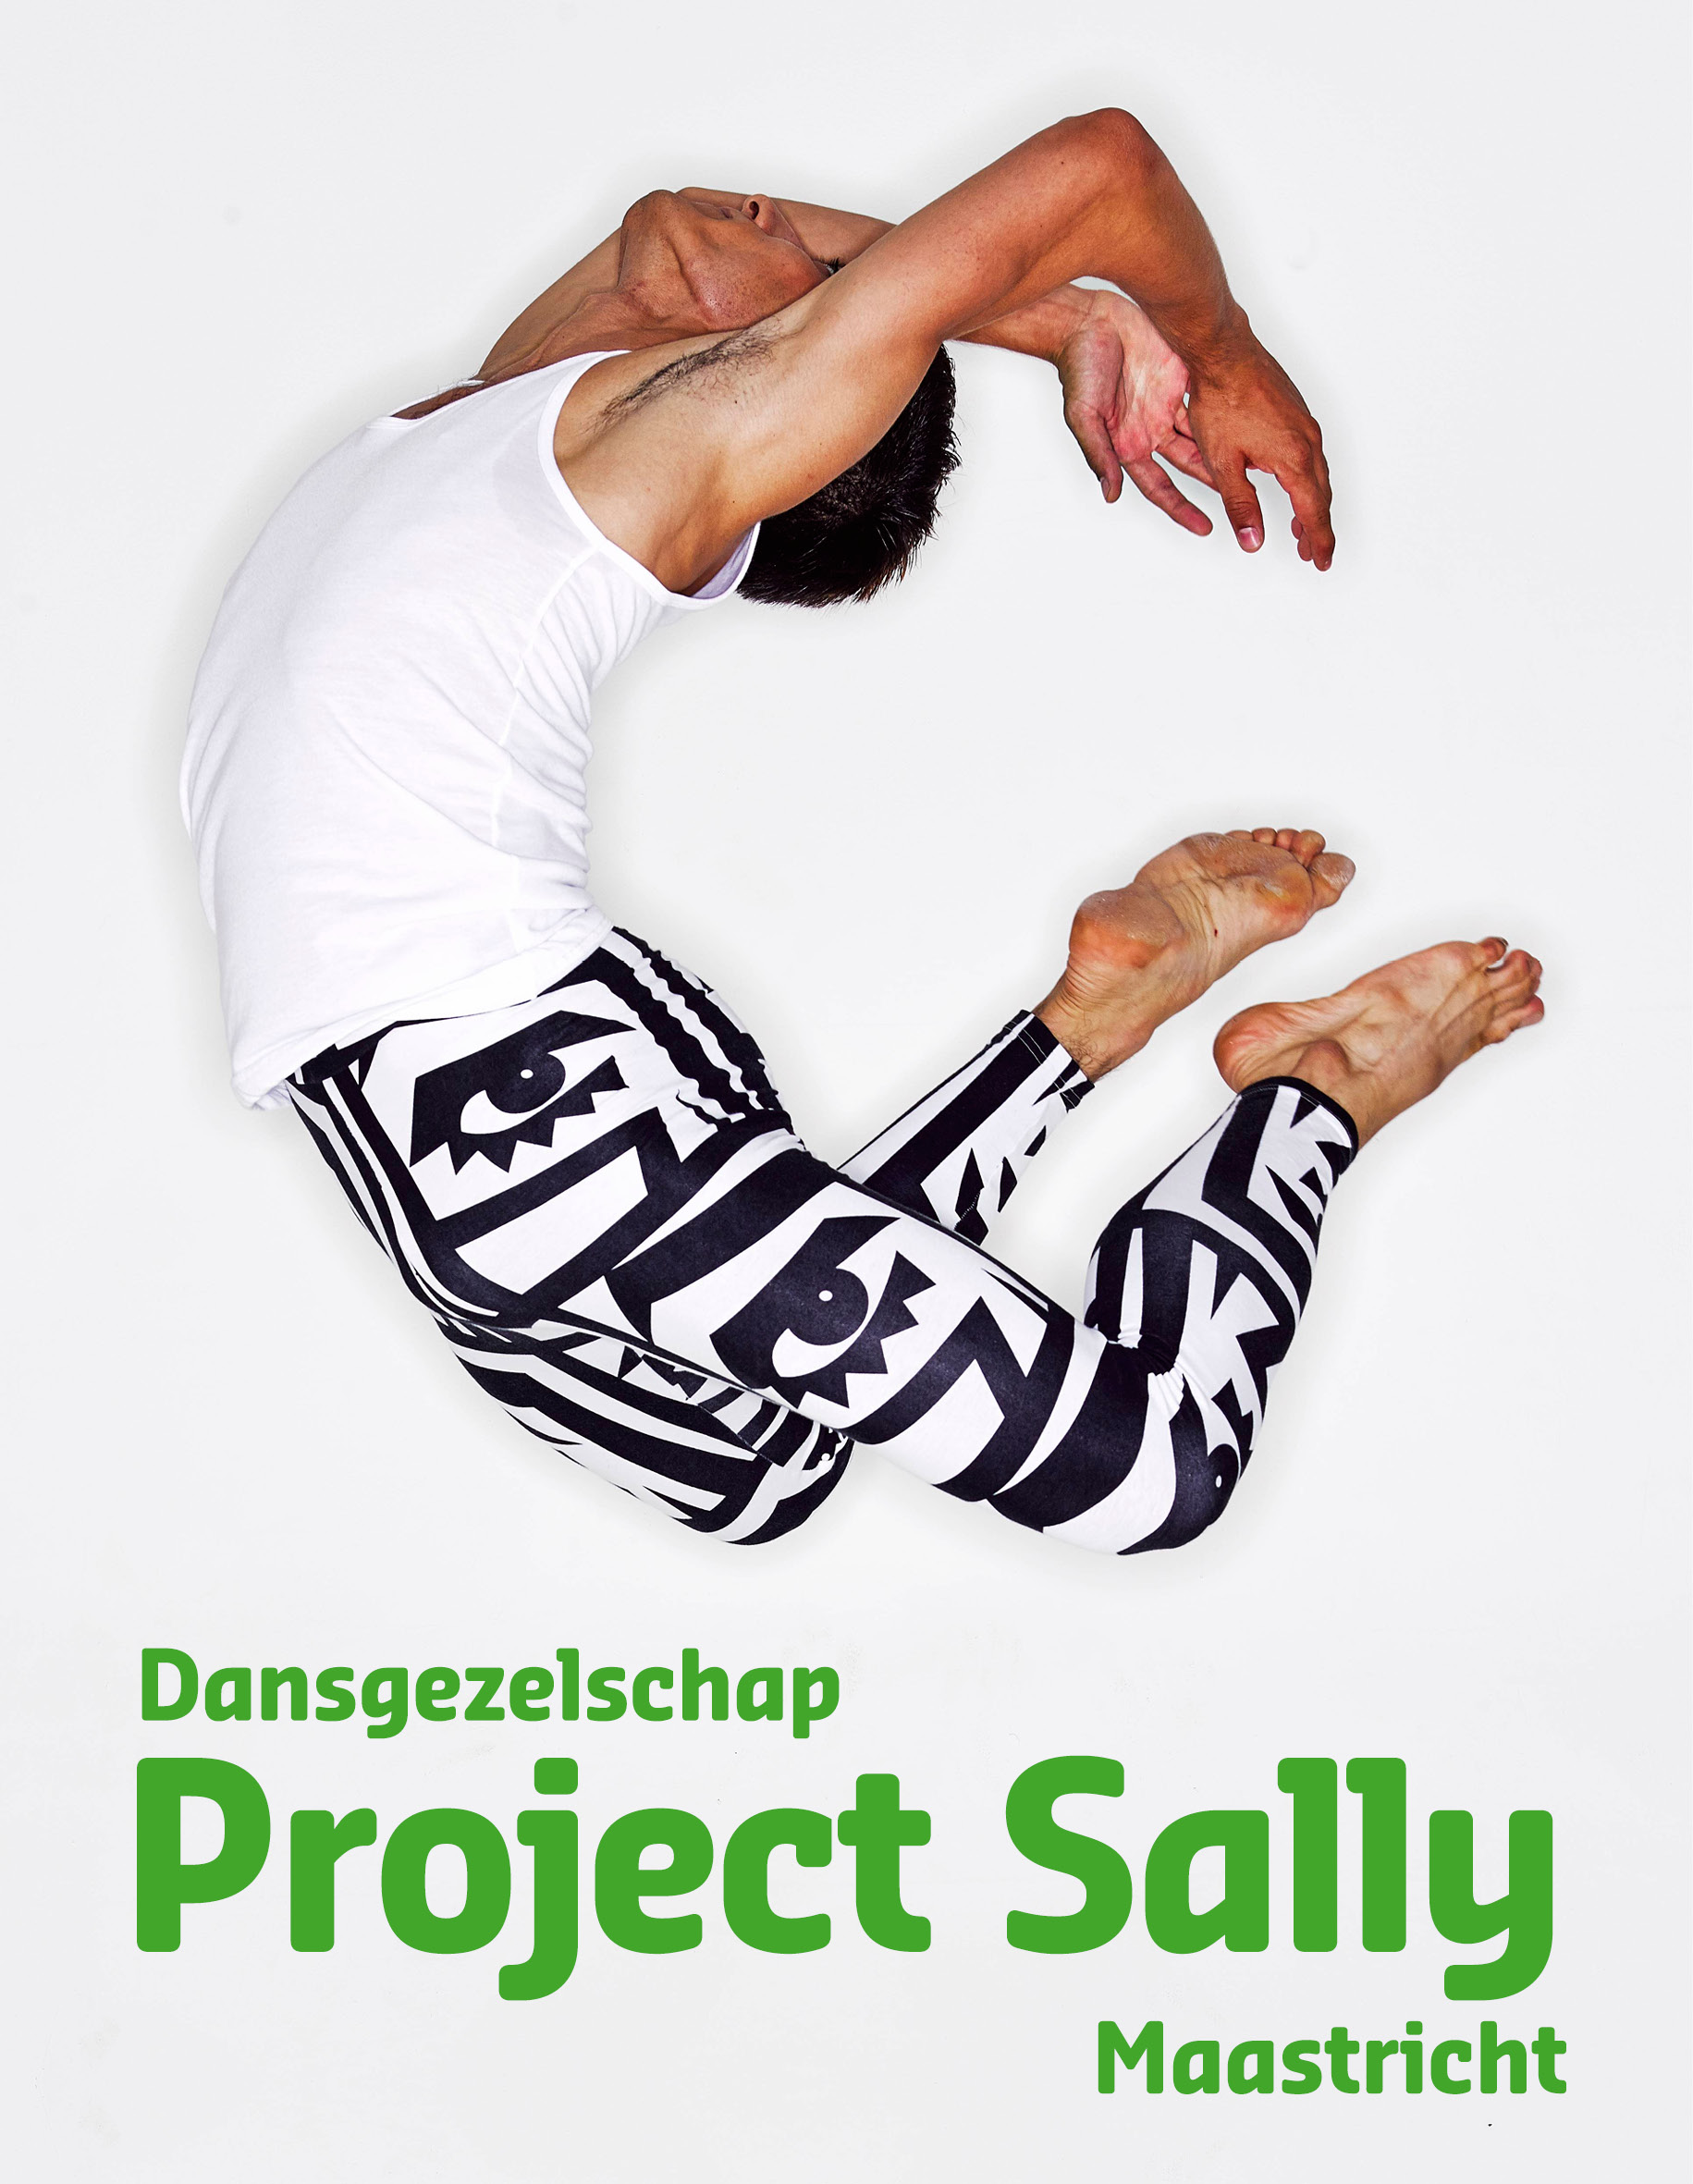 Project Sally logo- 300dpi